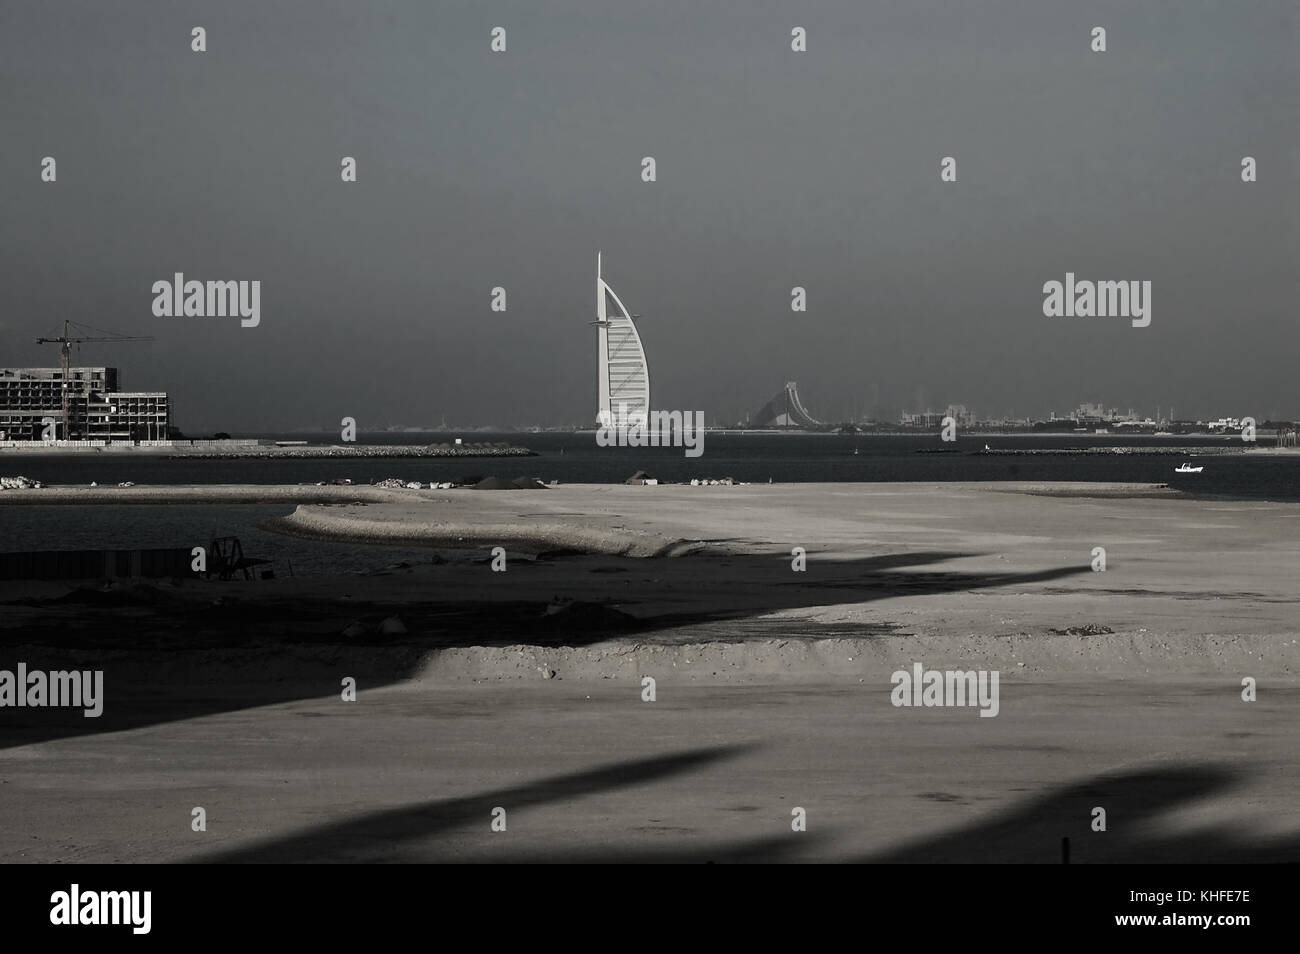 Distant view of the Burj al Arab Hotel, from the Arabian Gulf - Stock Image